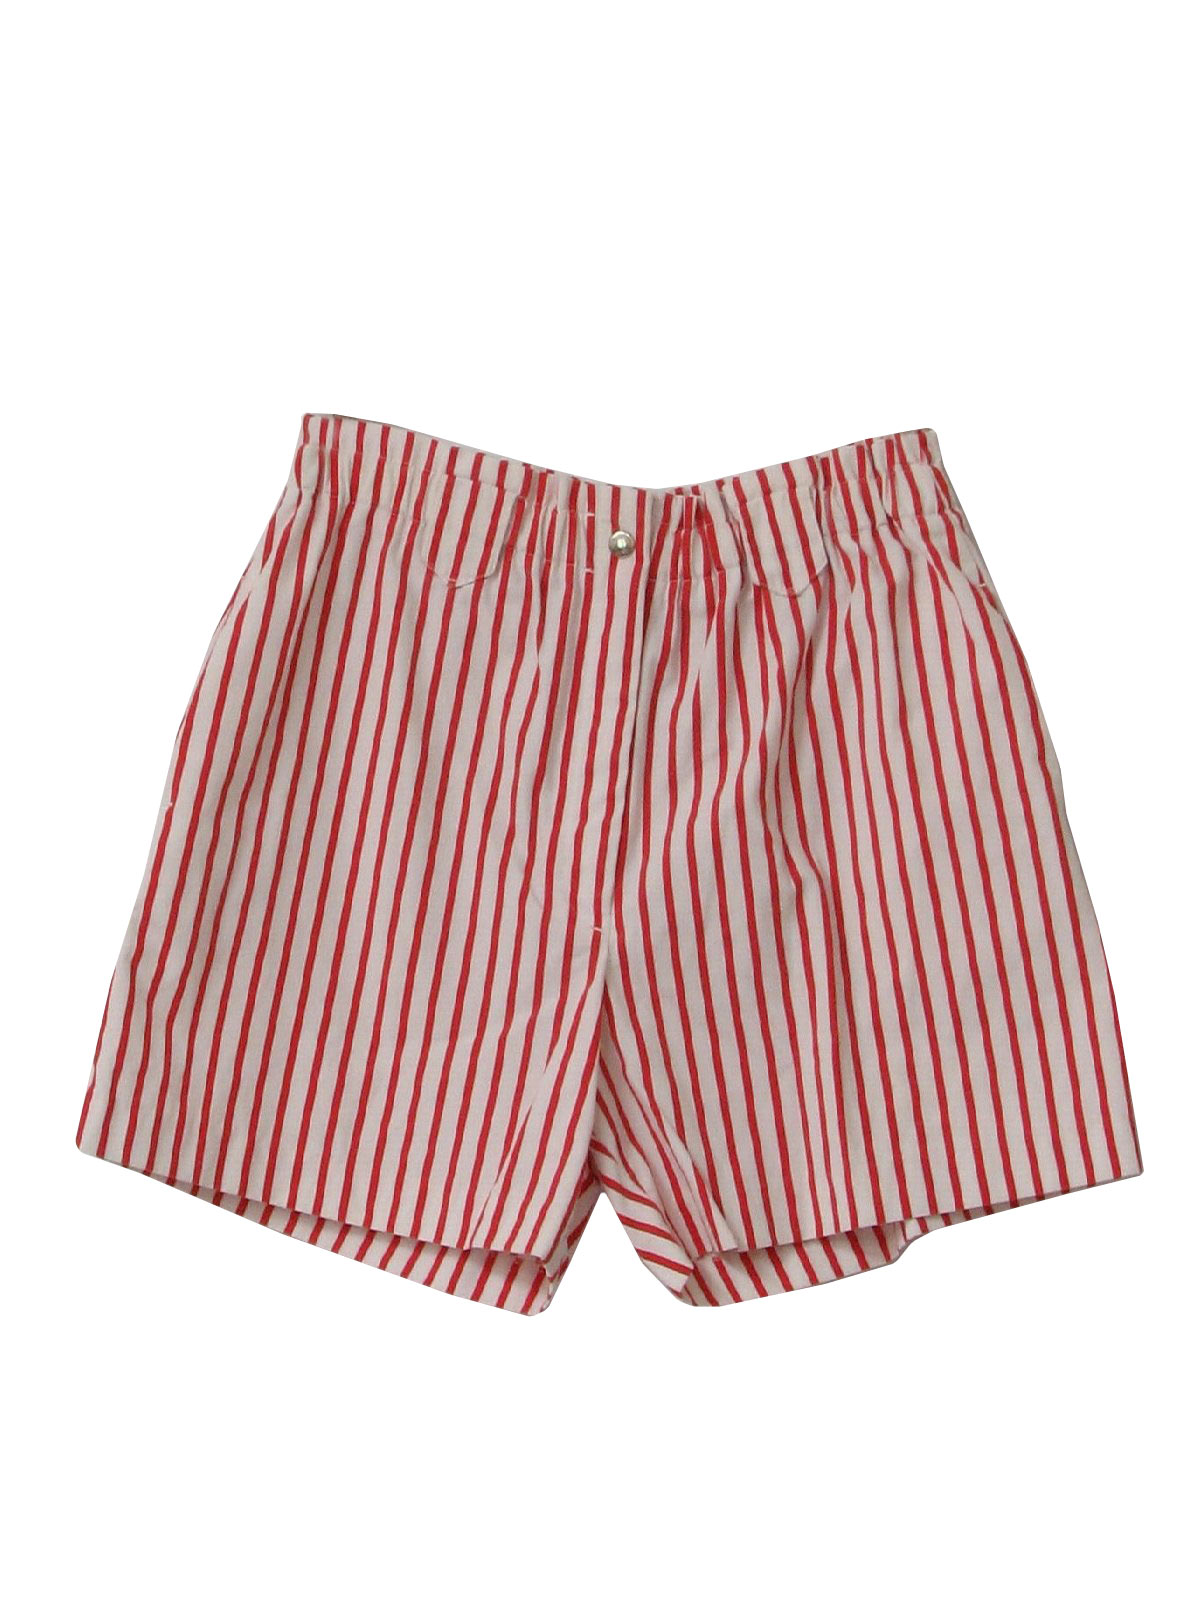 80s Shorts (Robins Nest): 80s -Robins Nest- Womens red and white ...